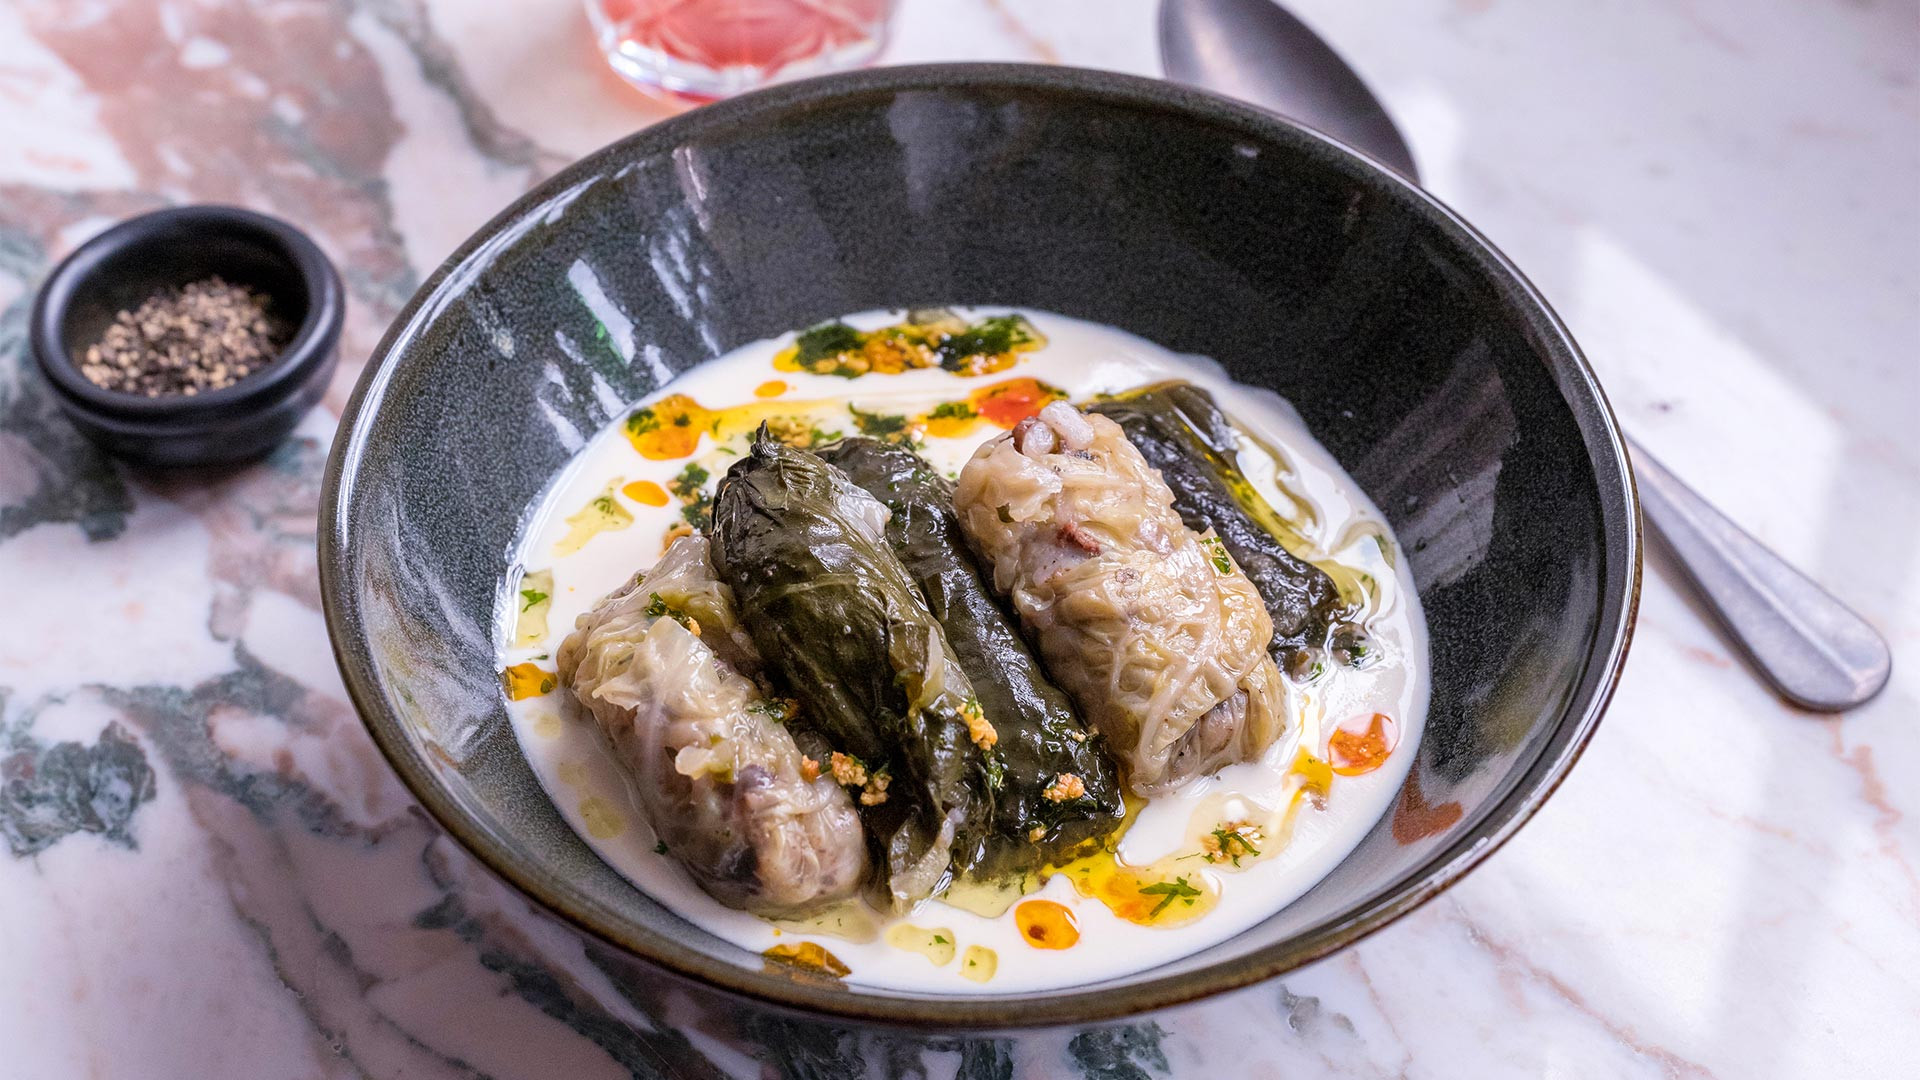 Villa Mama's warak enab, vine leaves filled with rice, tomatoes and herbs